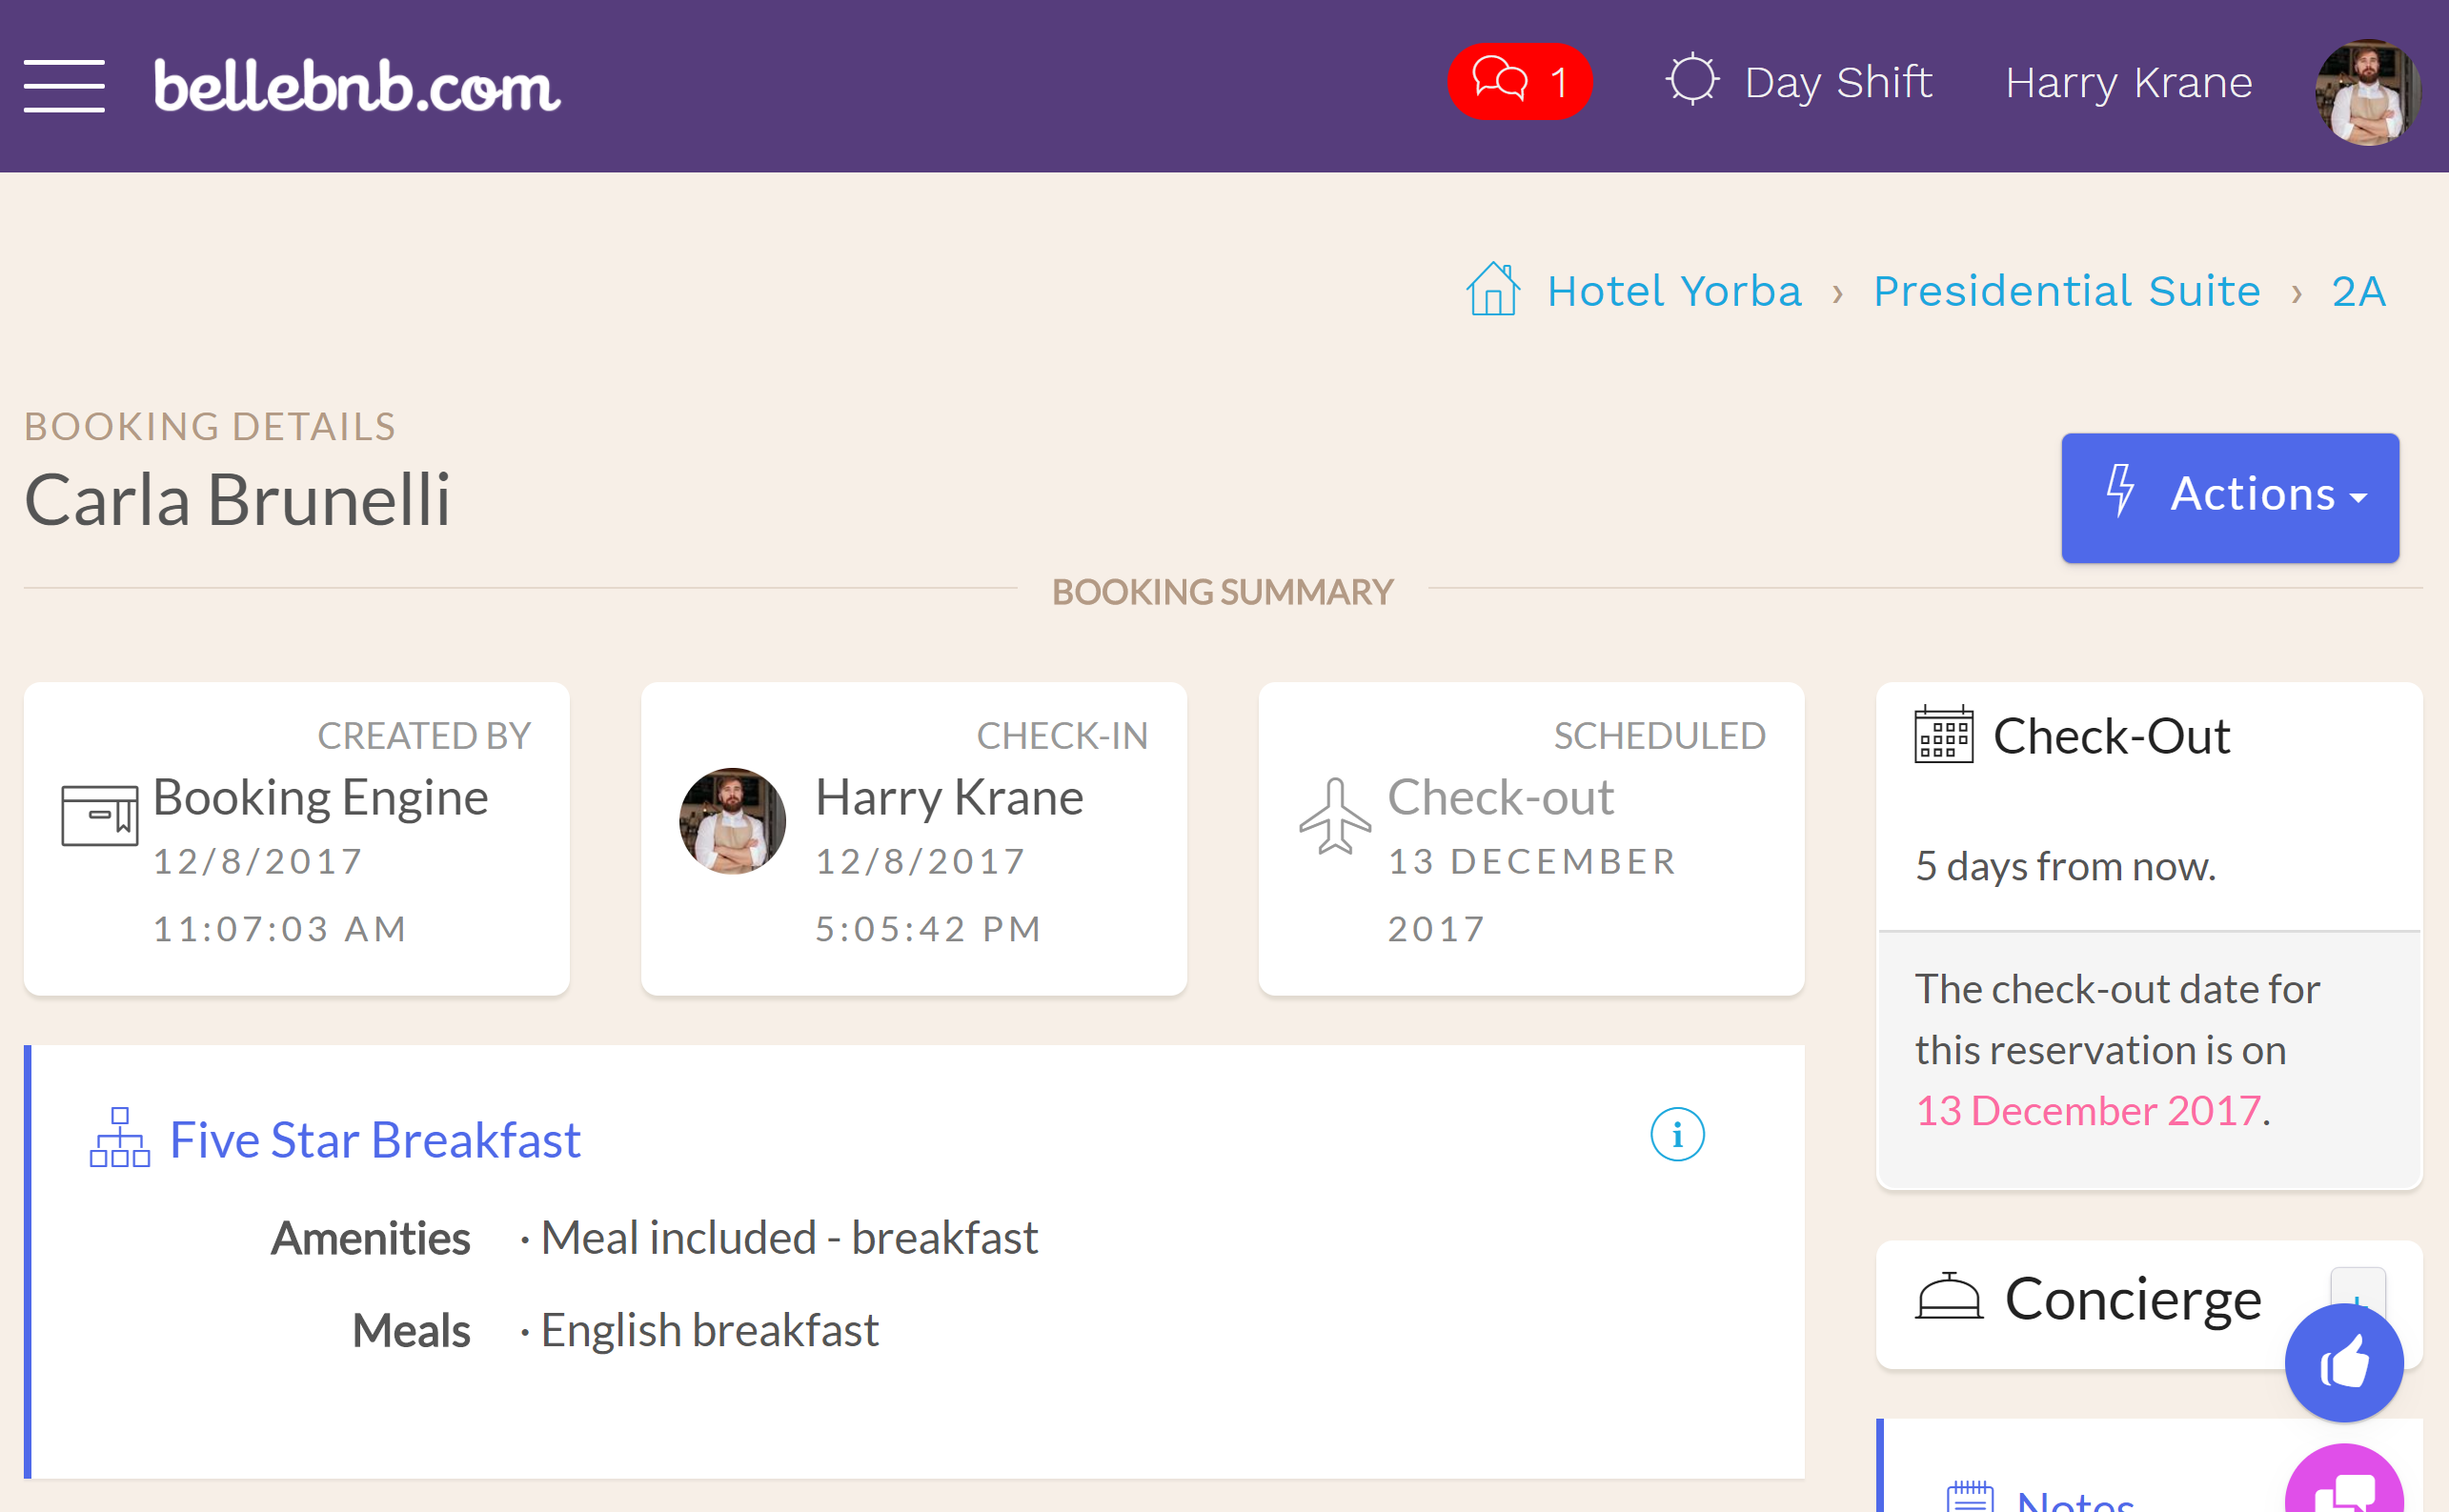 Next, click 'Check-in' (or 'Actions > Check In') to complete check-in. You will see the reservation has turned green in your calendar to indicate it has been checked in, and it's no longer listed as 'Check-in Today' in your Inbox